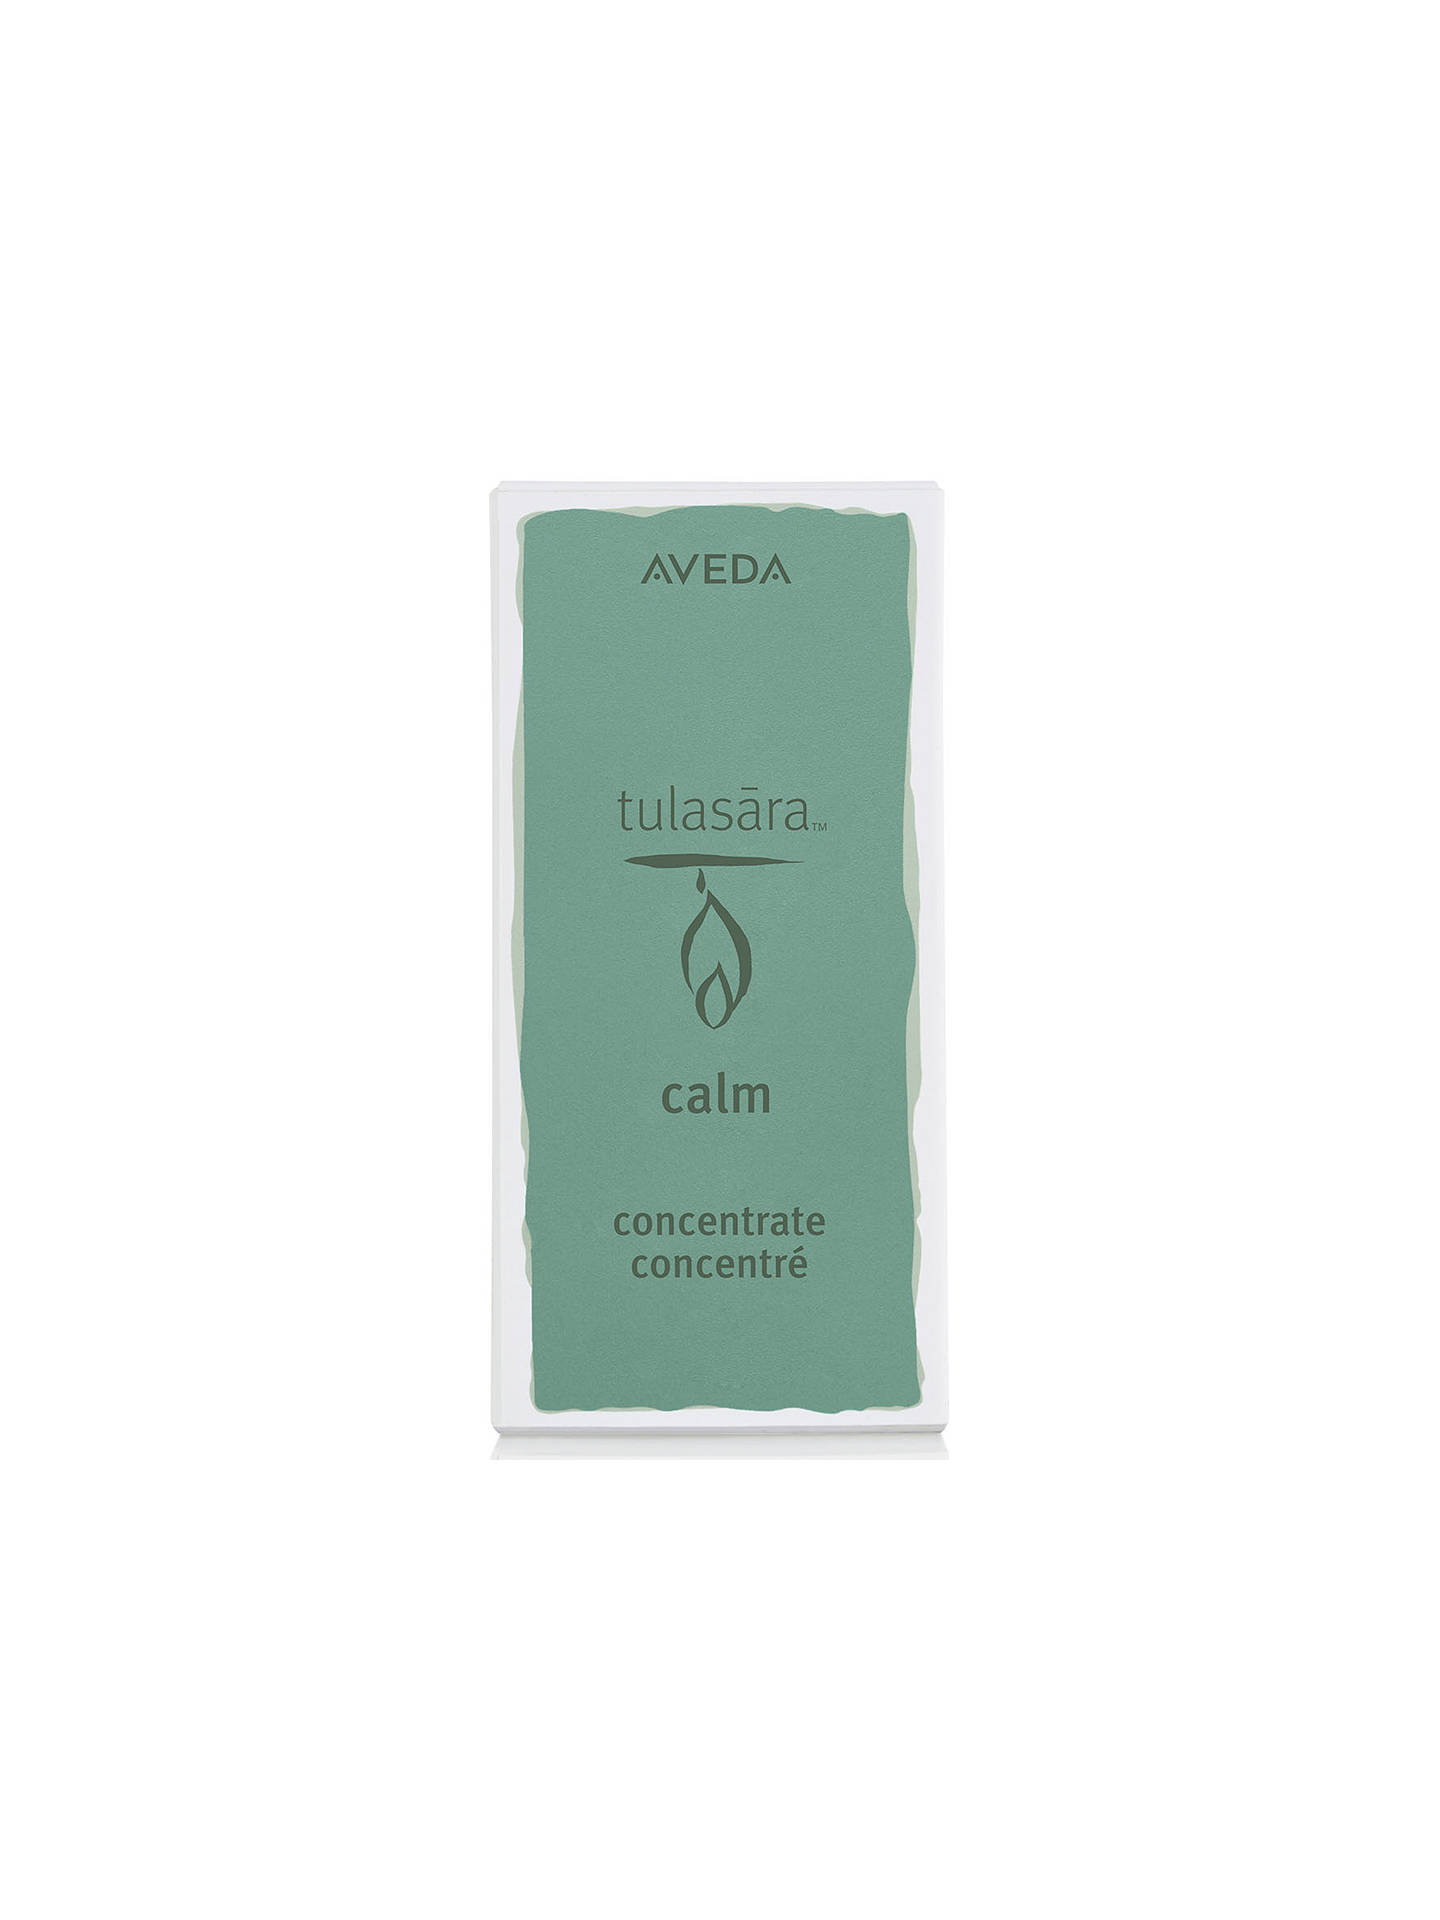 Buy Aveda Tulasara Calm Concentrate Facial Treatment, 30ml Online at johnlewis.com